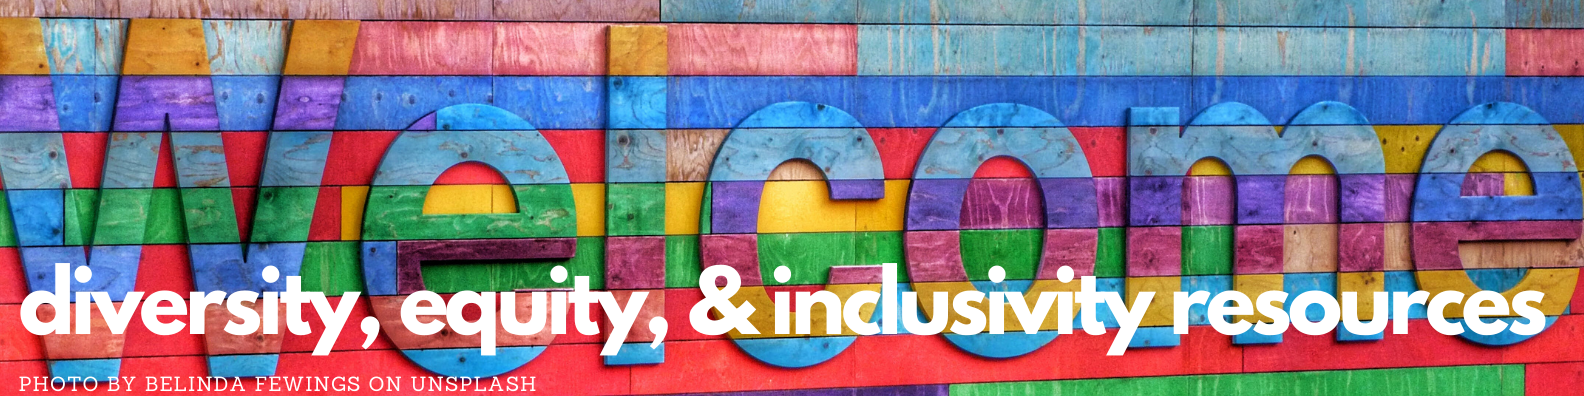 Welcome to diversity, equity, and inclusivity resources guide. Image of multi-color welcome sign by Belinda Fewings on Unsplash